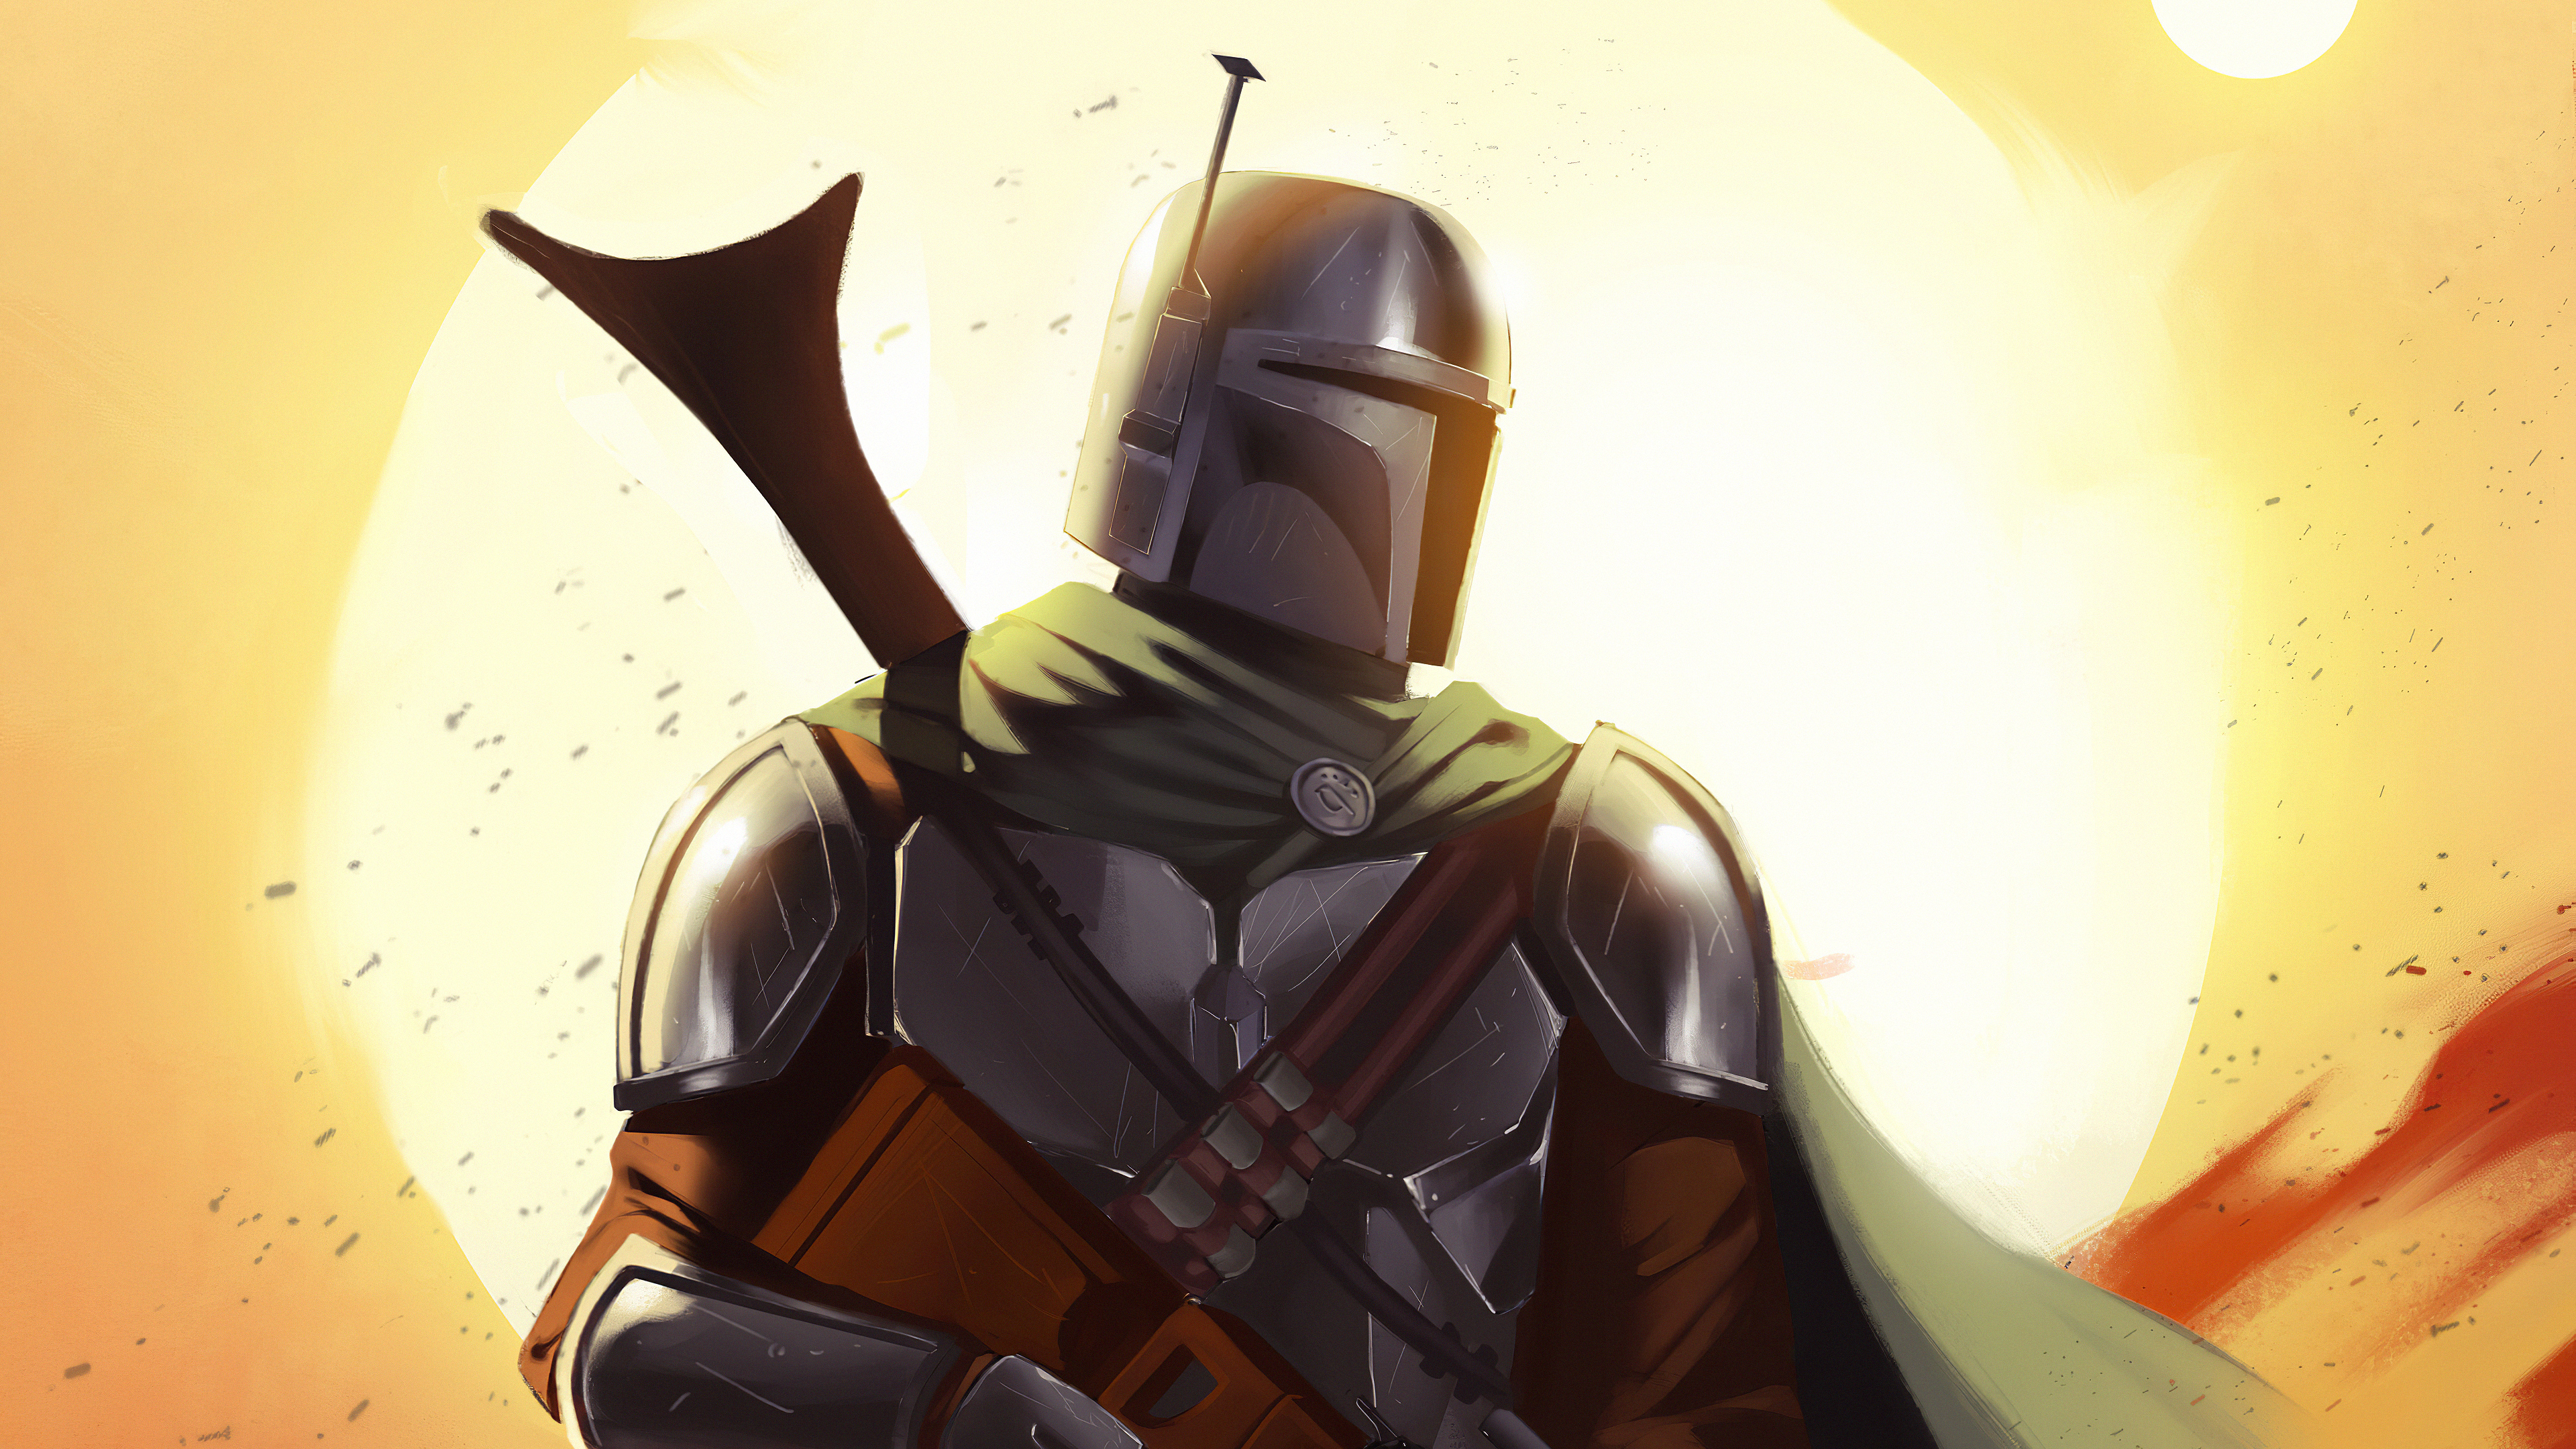 Wallpaper 4k The Mandalorian Art The Mandalorian Art 4k Wallpapers The Mandalorian Art Wallpapers